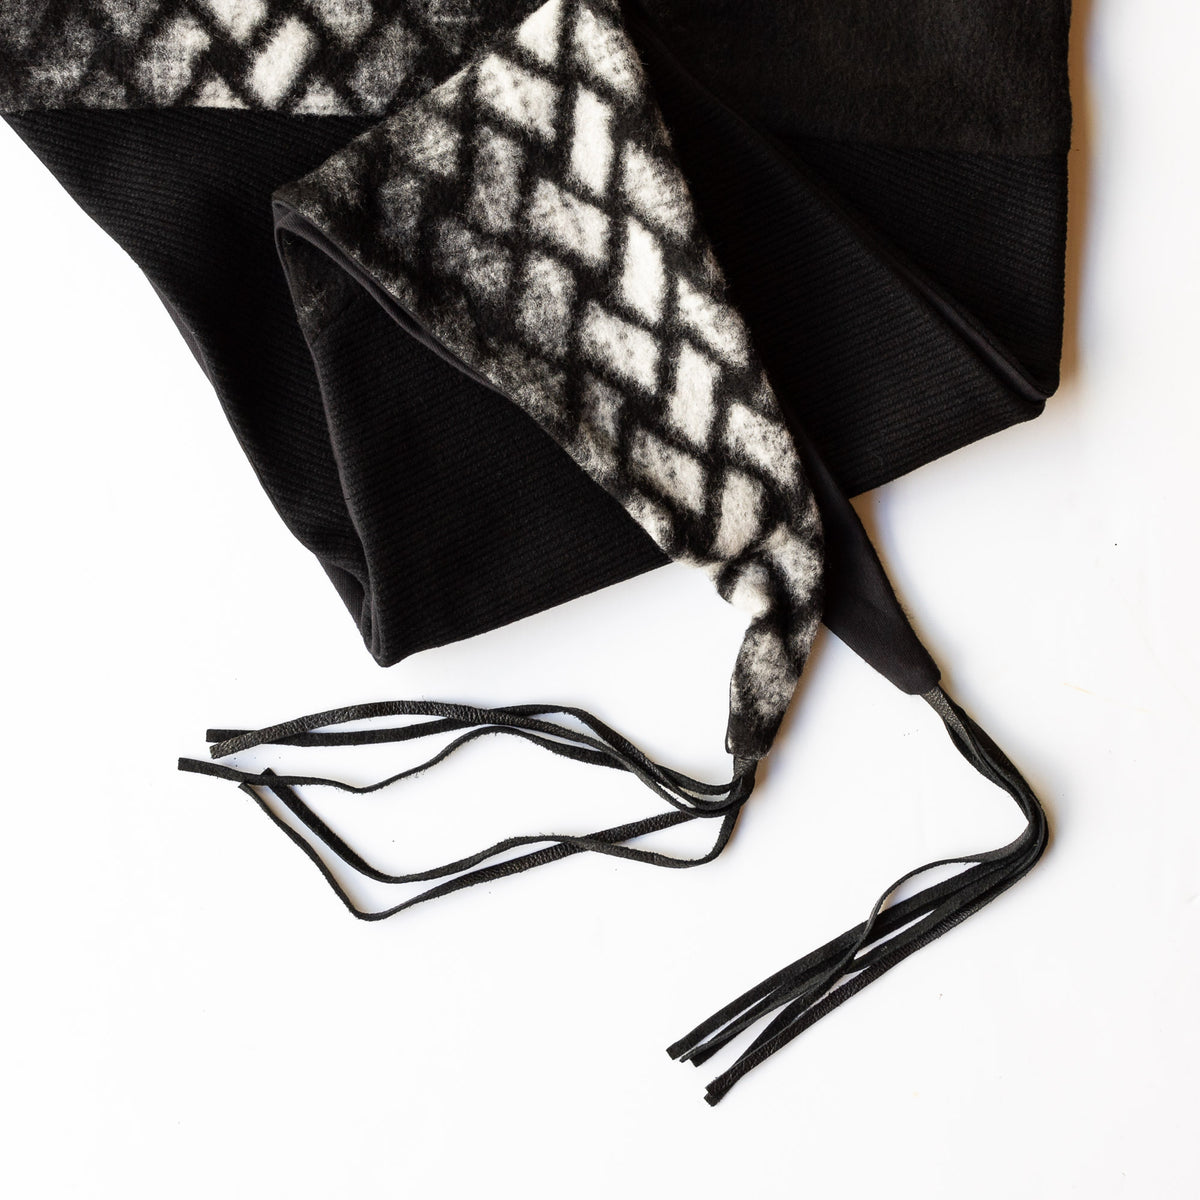 Detail - Indiana Scarf / Shawl - Black & White Diamond - Sold by Chic & Basta